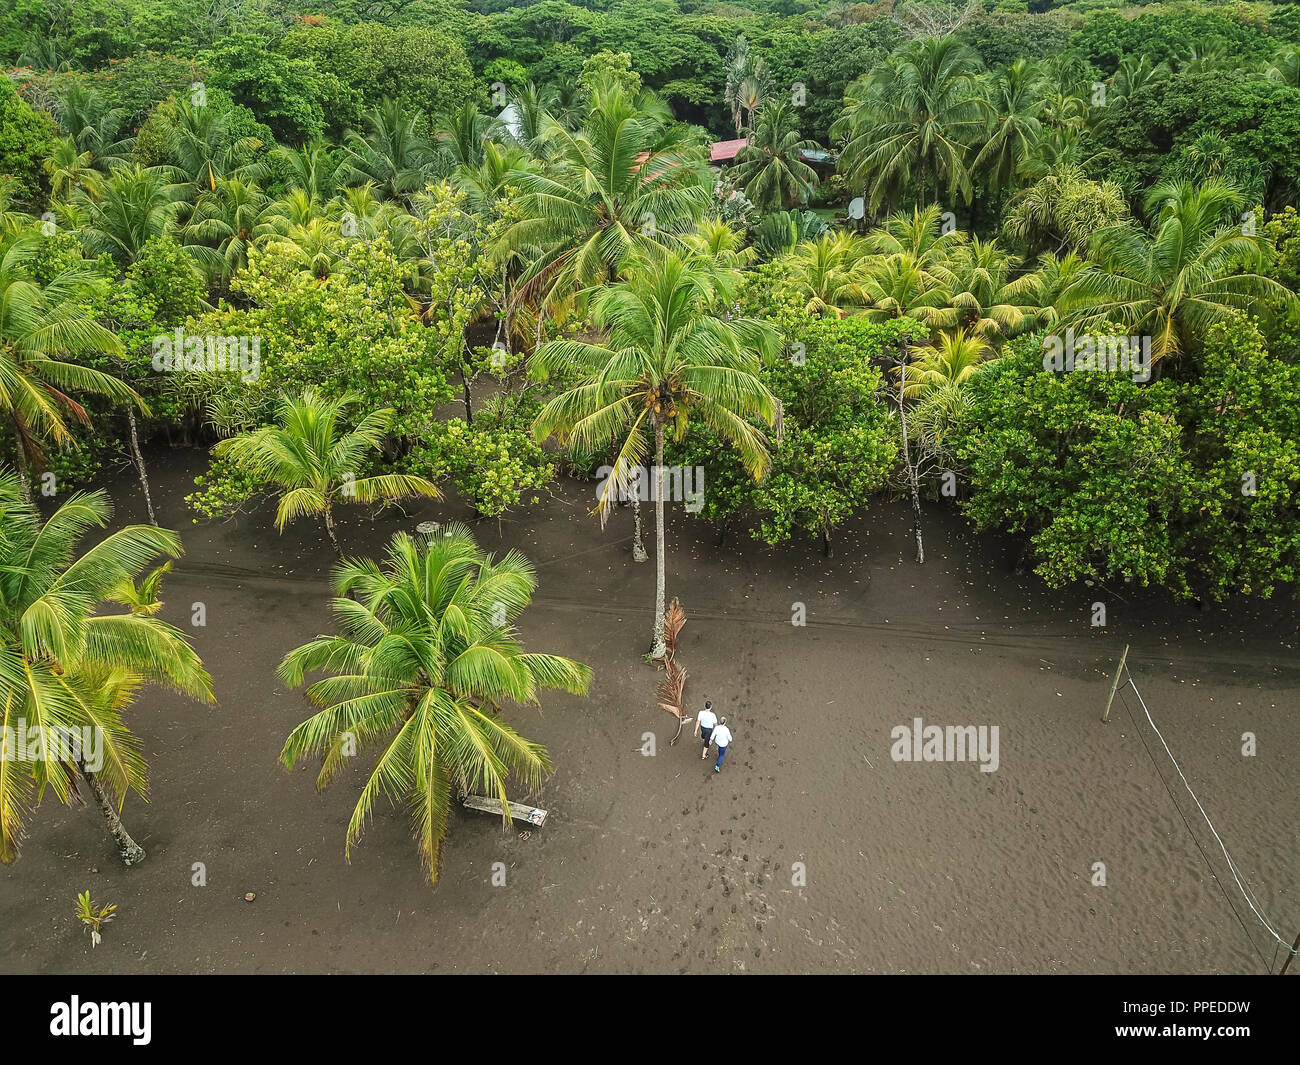 Tortuguero National Park, Costa Rica - Stock Image